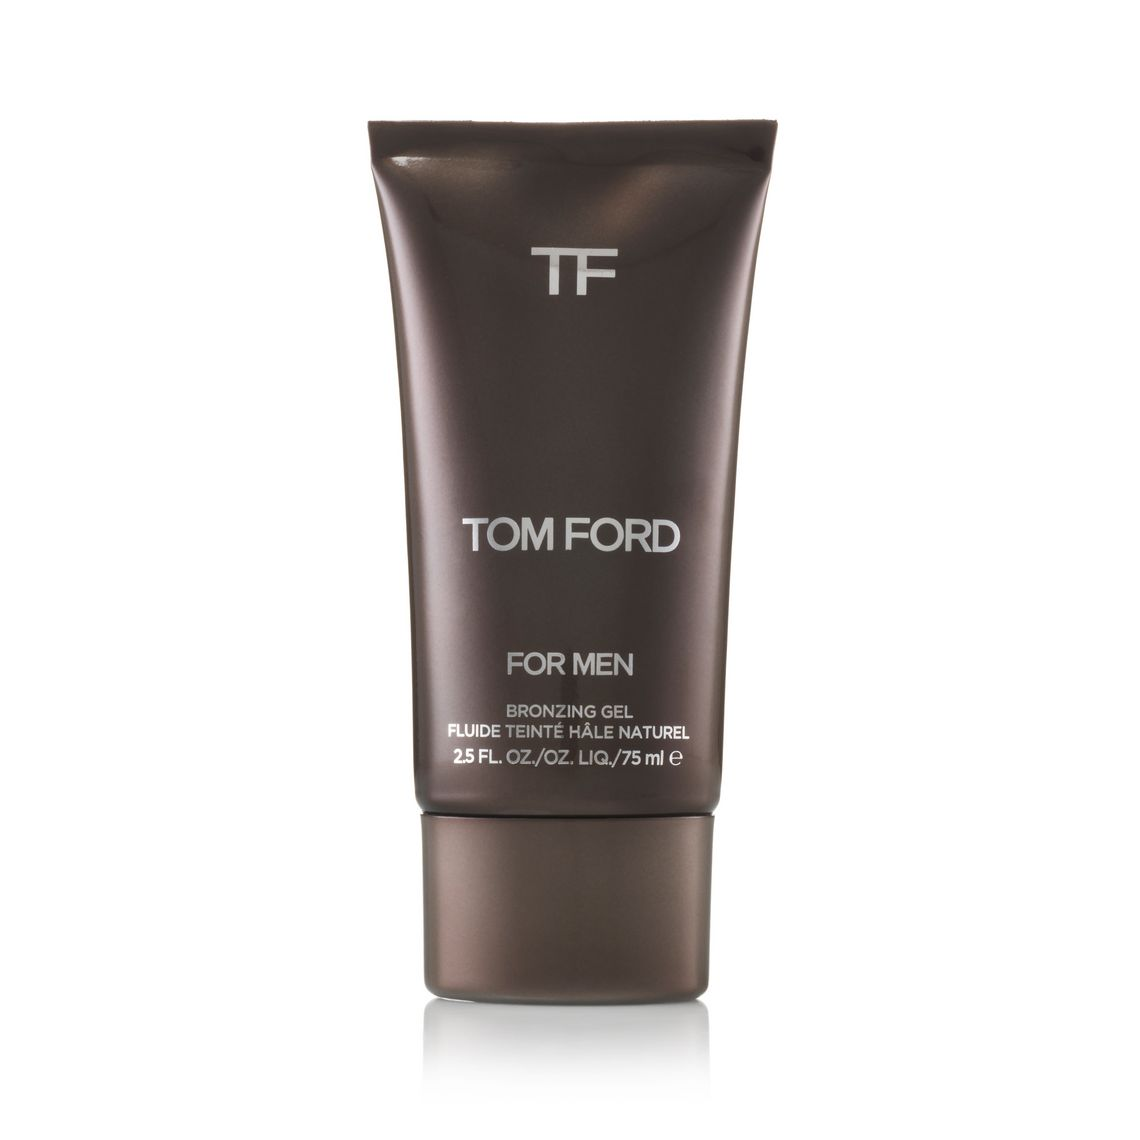 Bronzing Gel For Men: Tom Ford